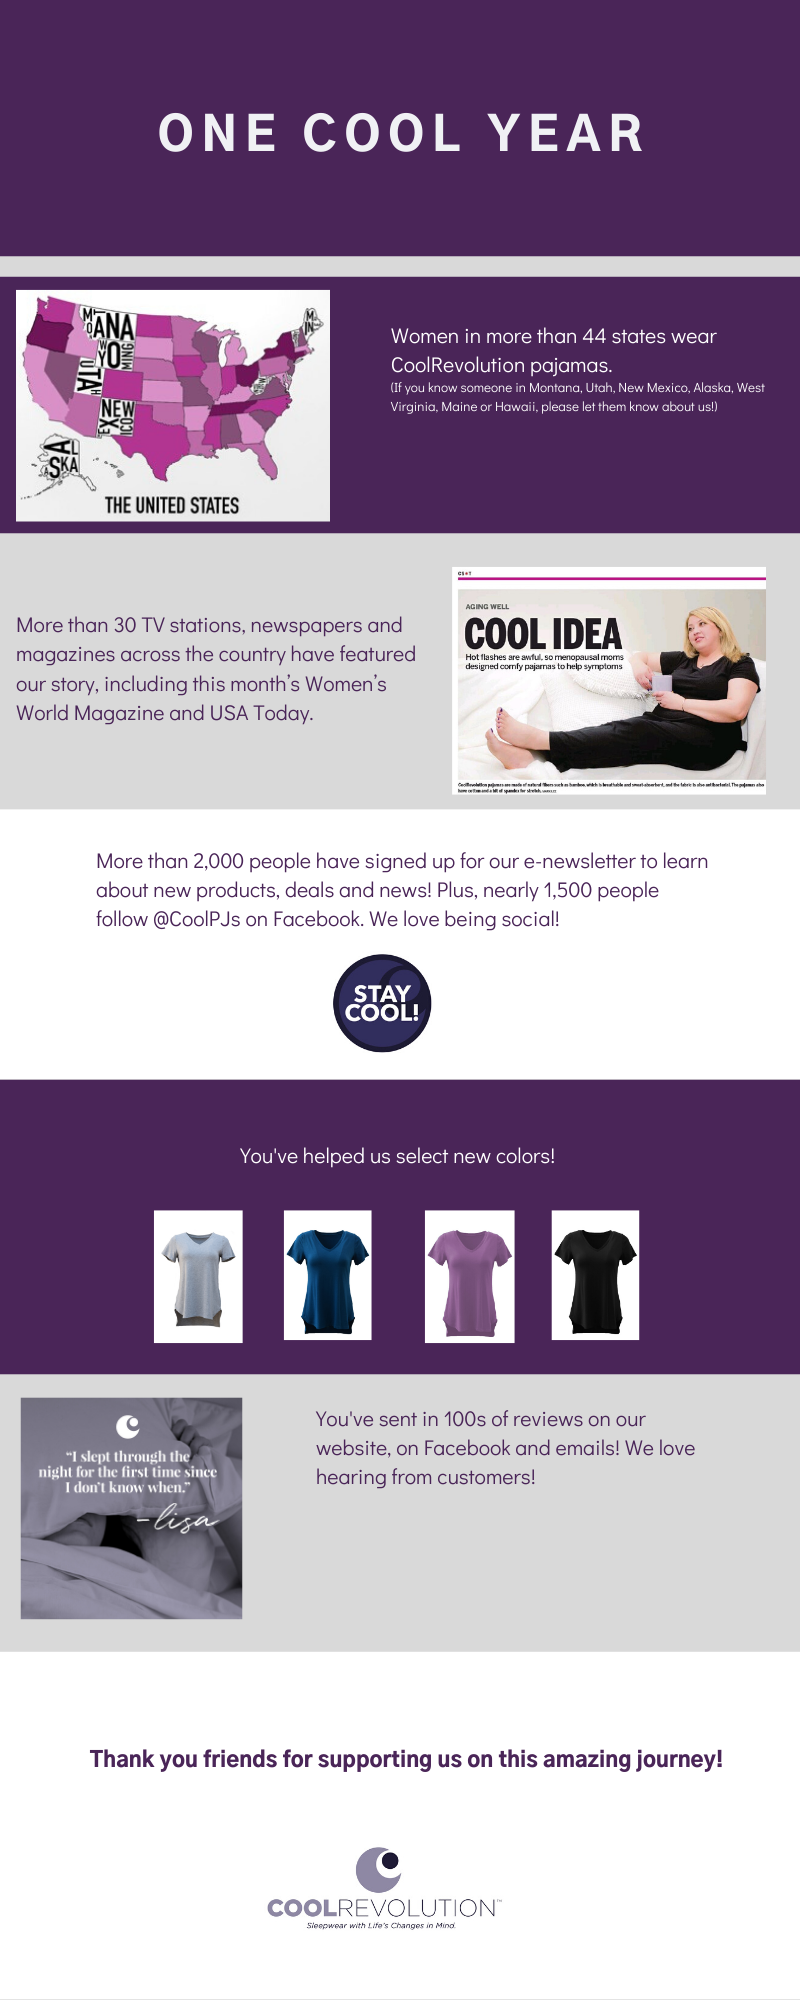 CoolRevolution celebrates one year anniversary of selling PJs for night sweats